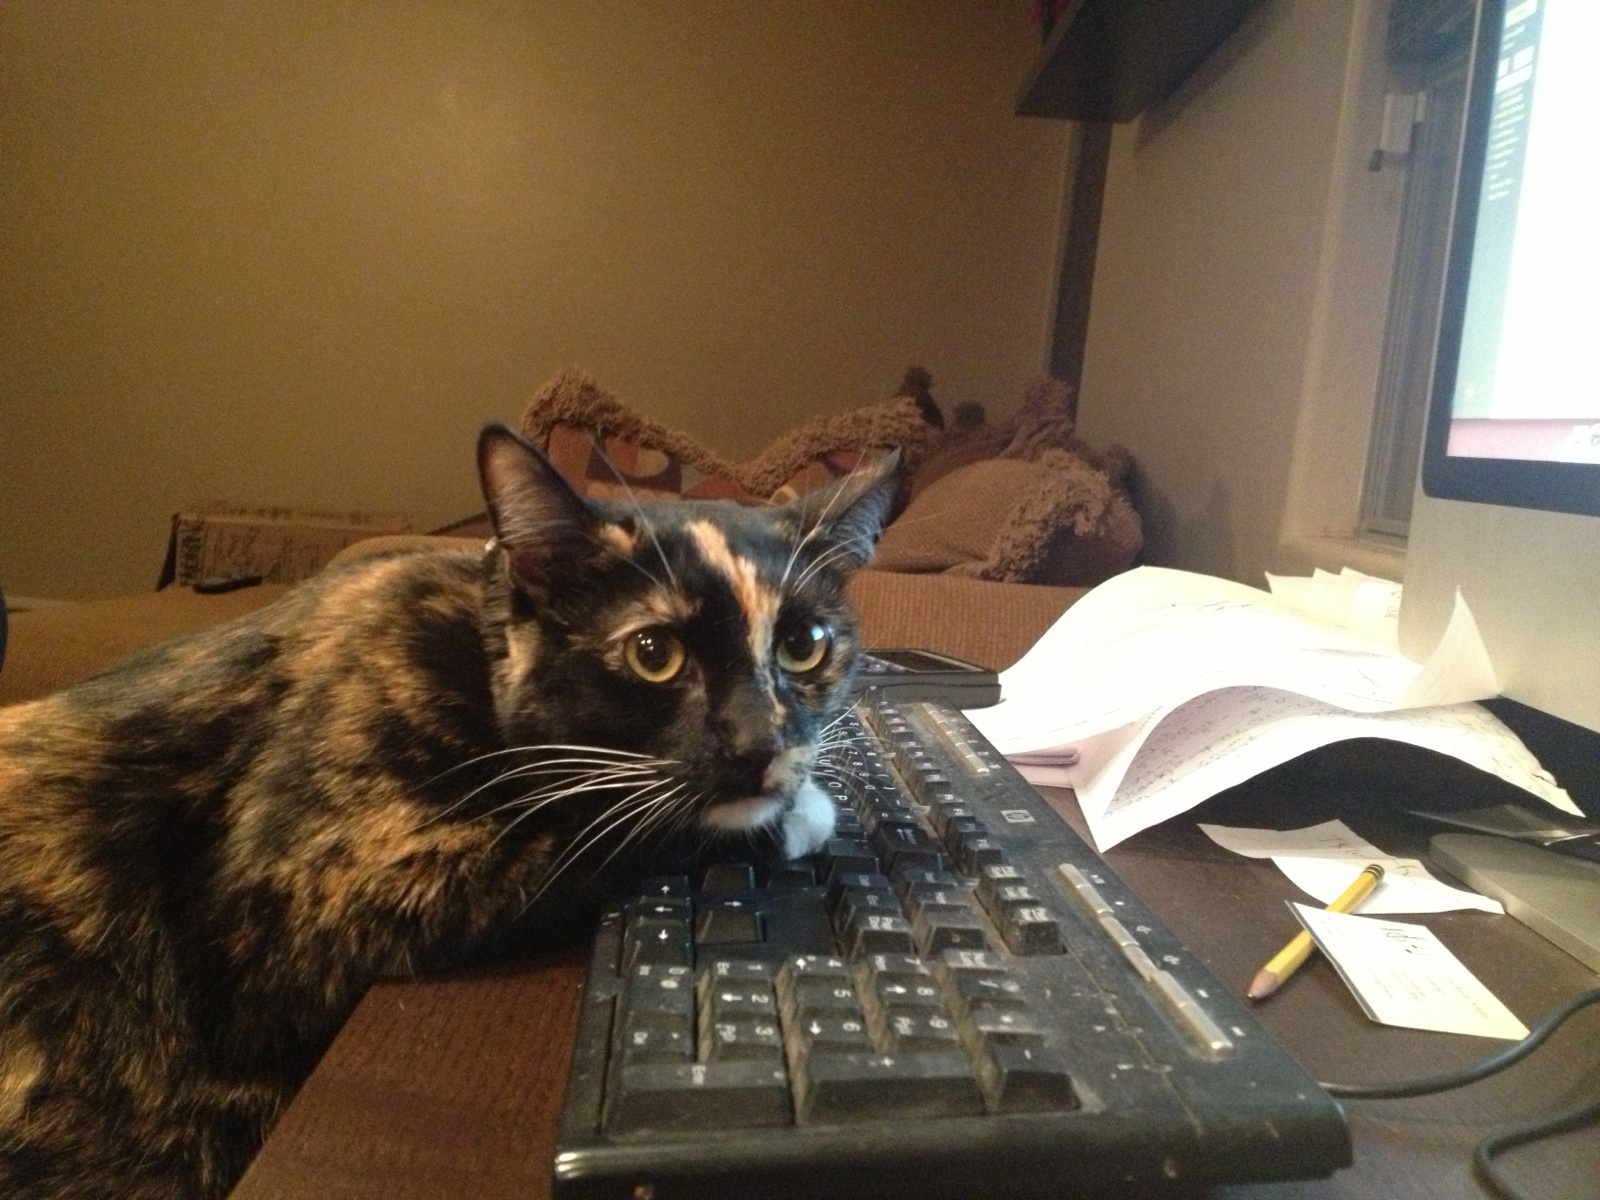 Lolita the Polydactyl Cat is Sneeking in some on-line Shopping